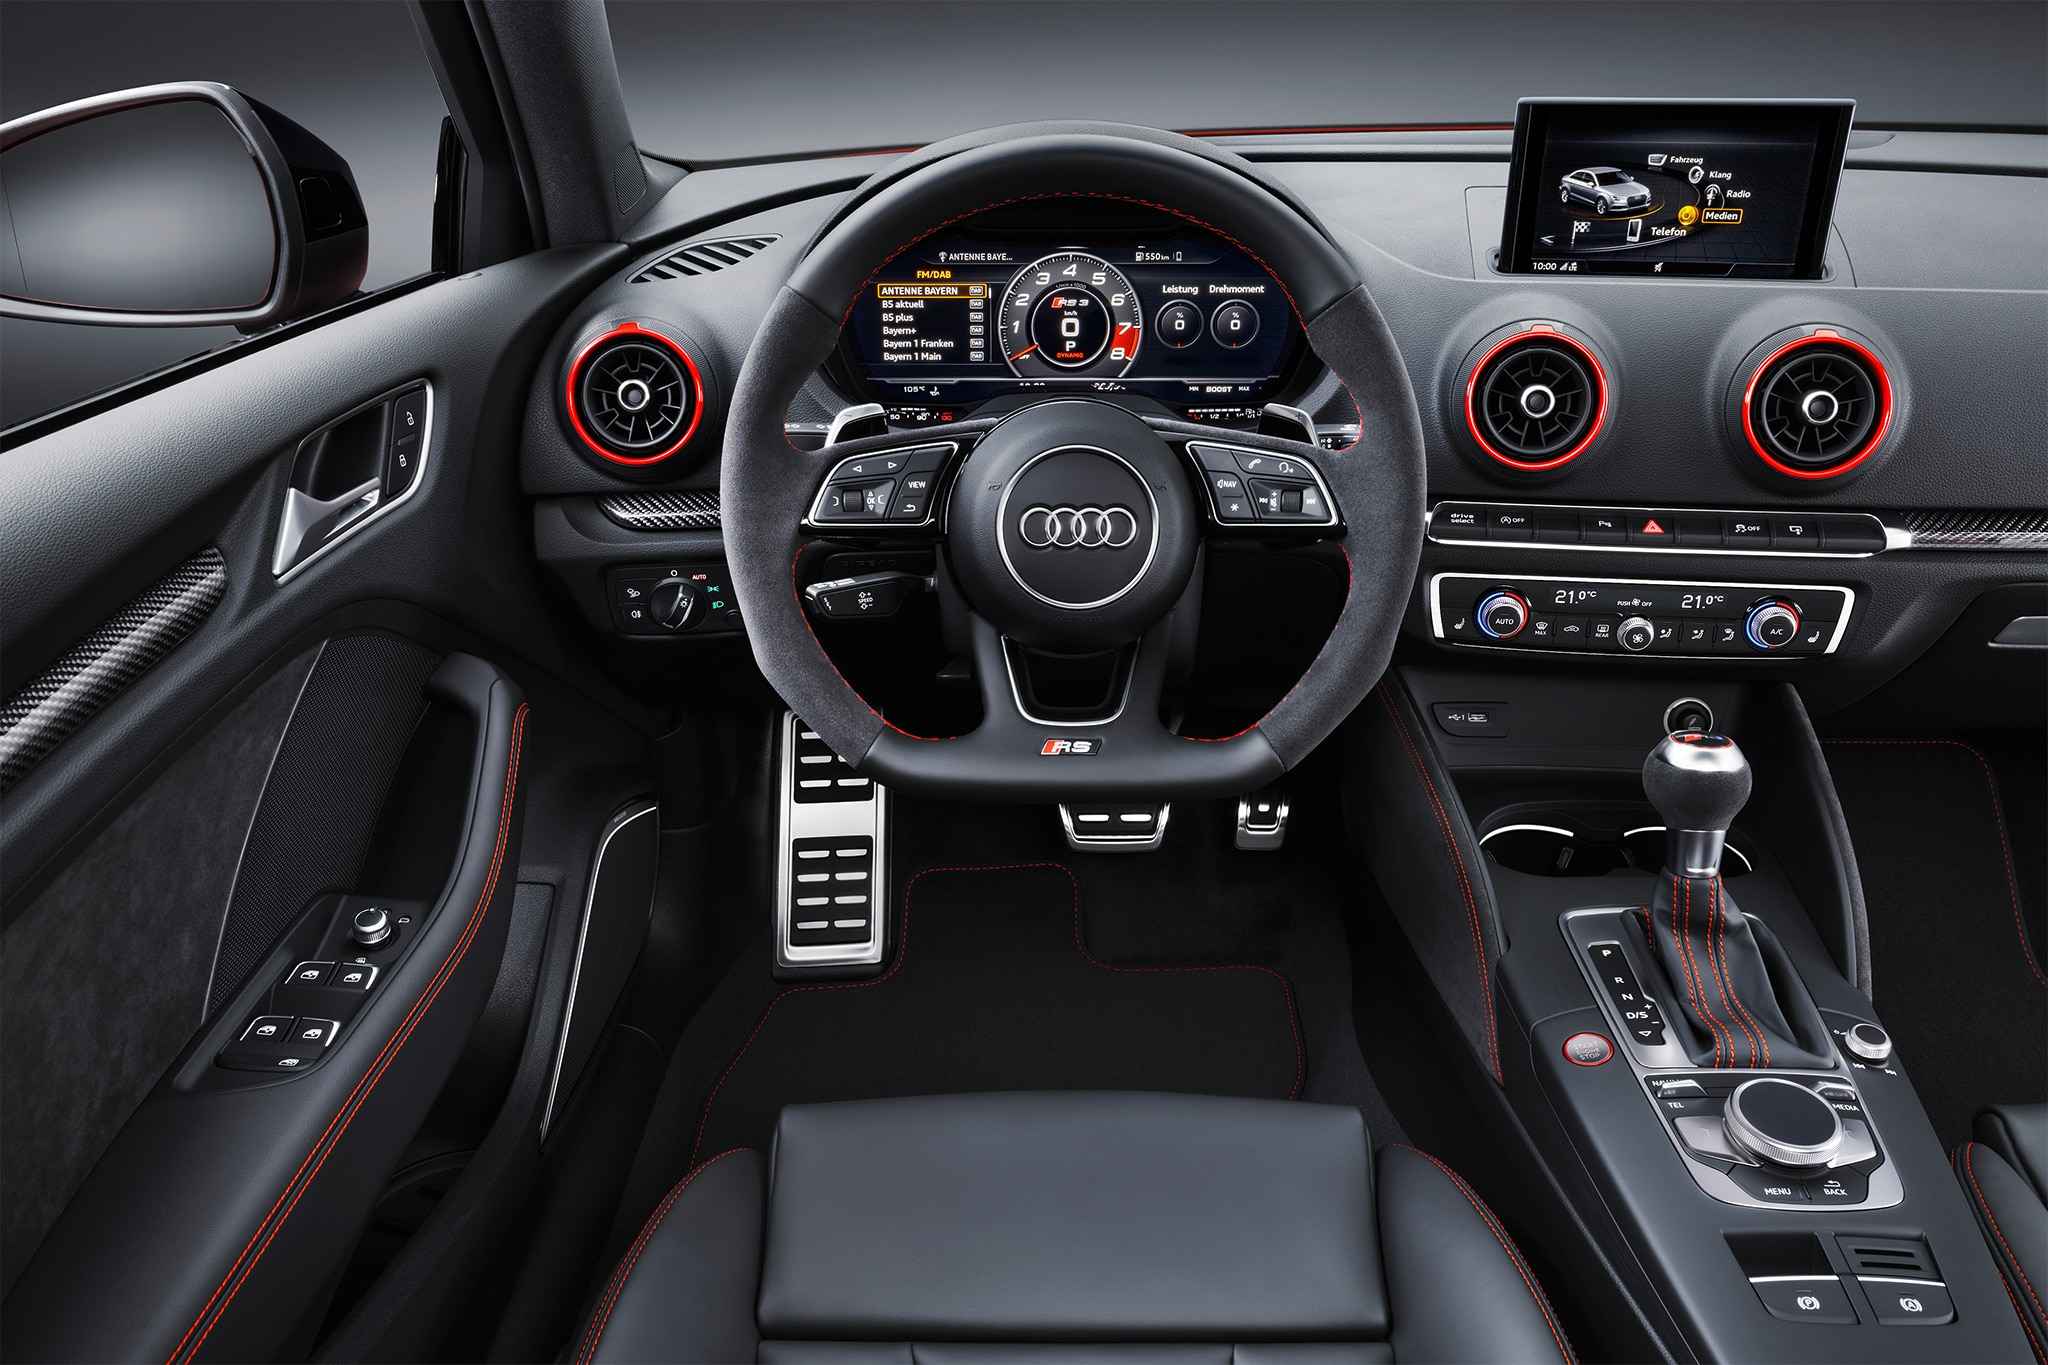 Gucci Benz >> 13 Things You Didn't Know About the 2018 Audi RS3 | Automobile Magazine